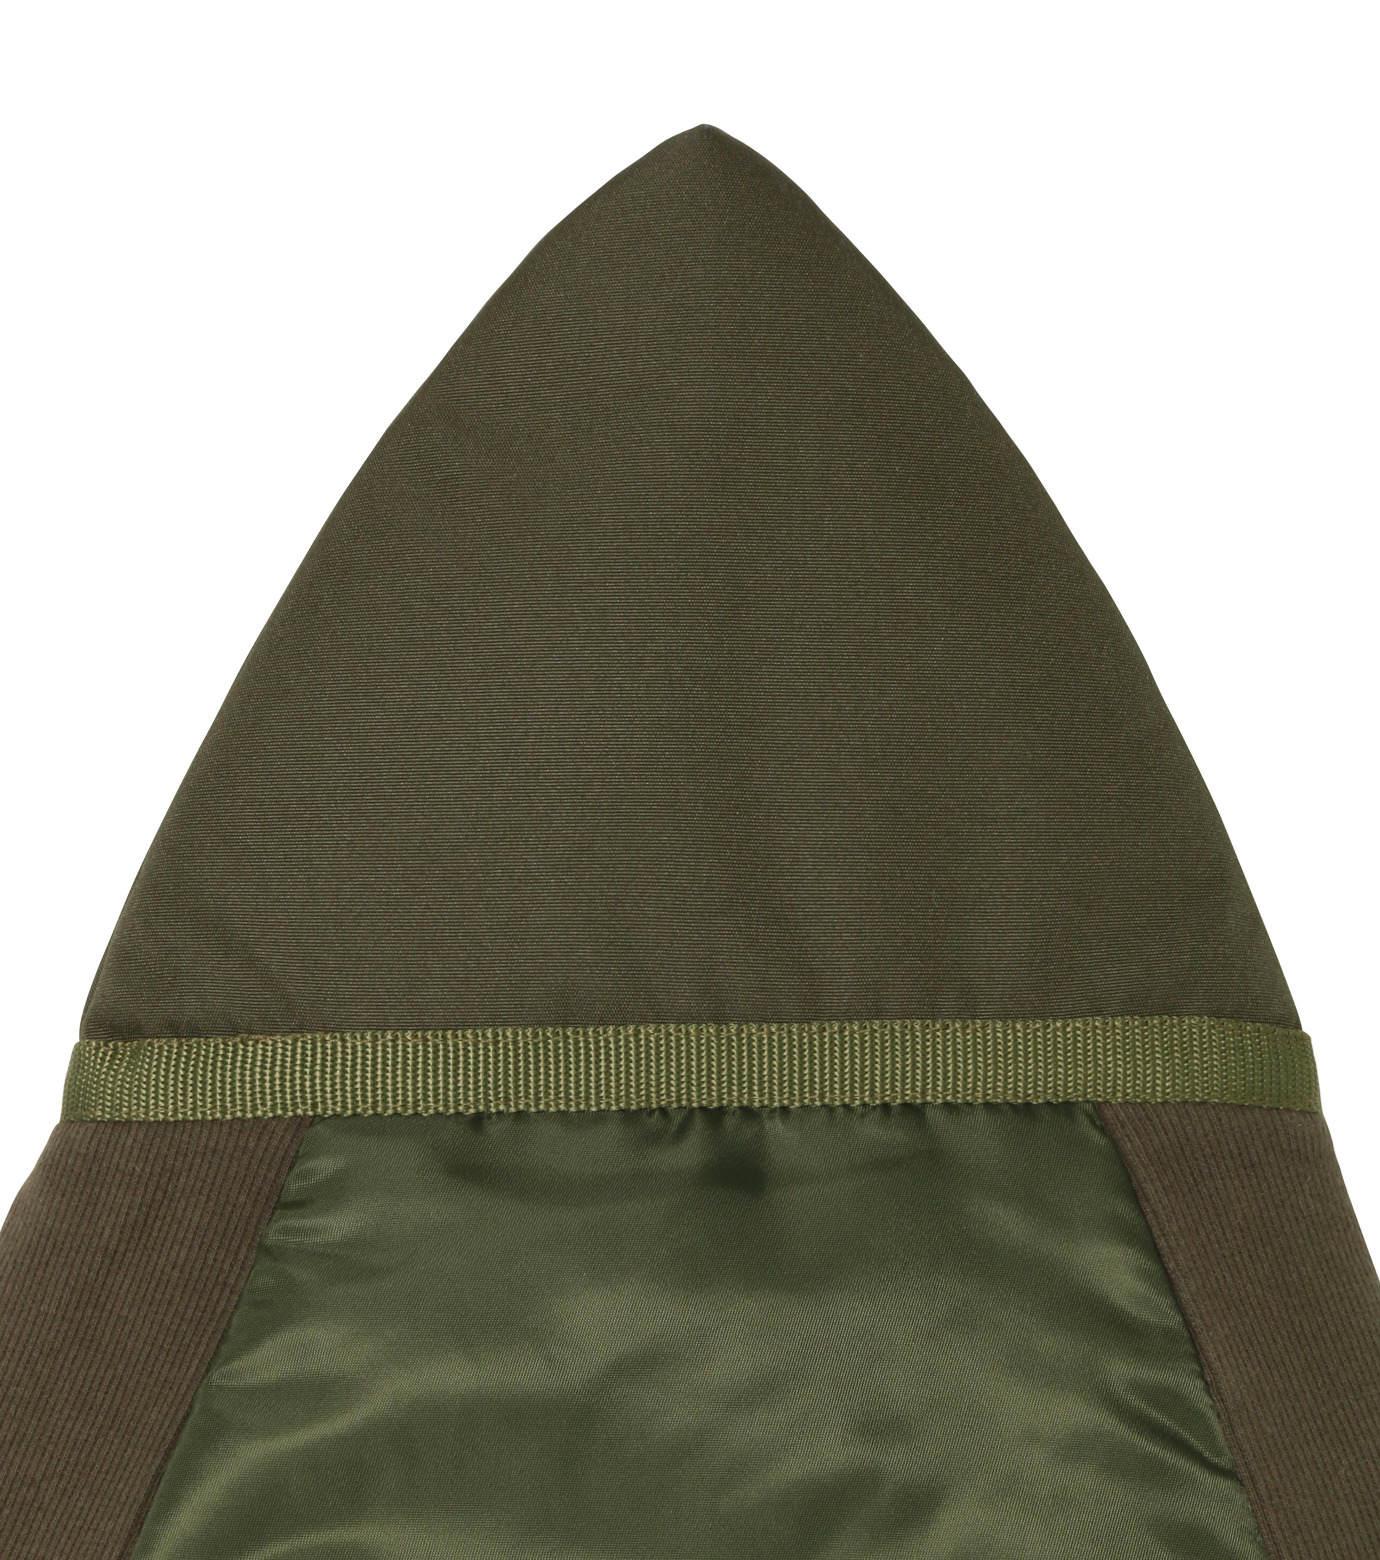 HEY YOU !(ヘイユウ)のSurfboard Jacket Short (S size)-KHAKI(サーフ/OUTDOOR/surf/OUTDOOR)-18S90009-24 拡大詳細画像2